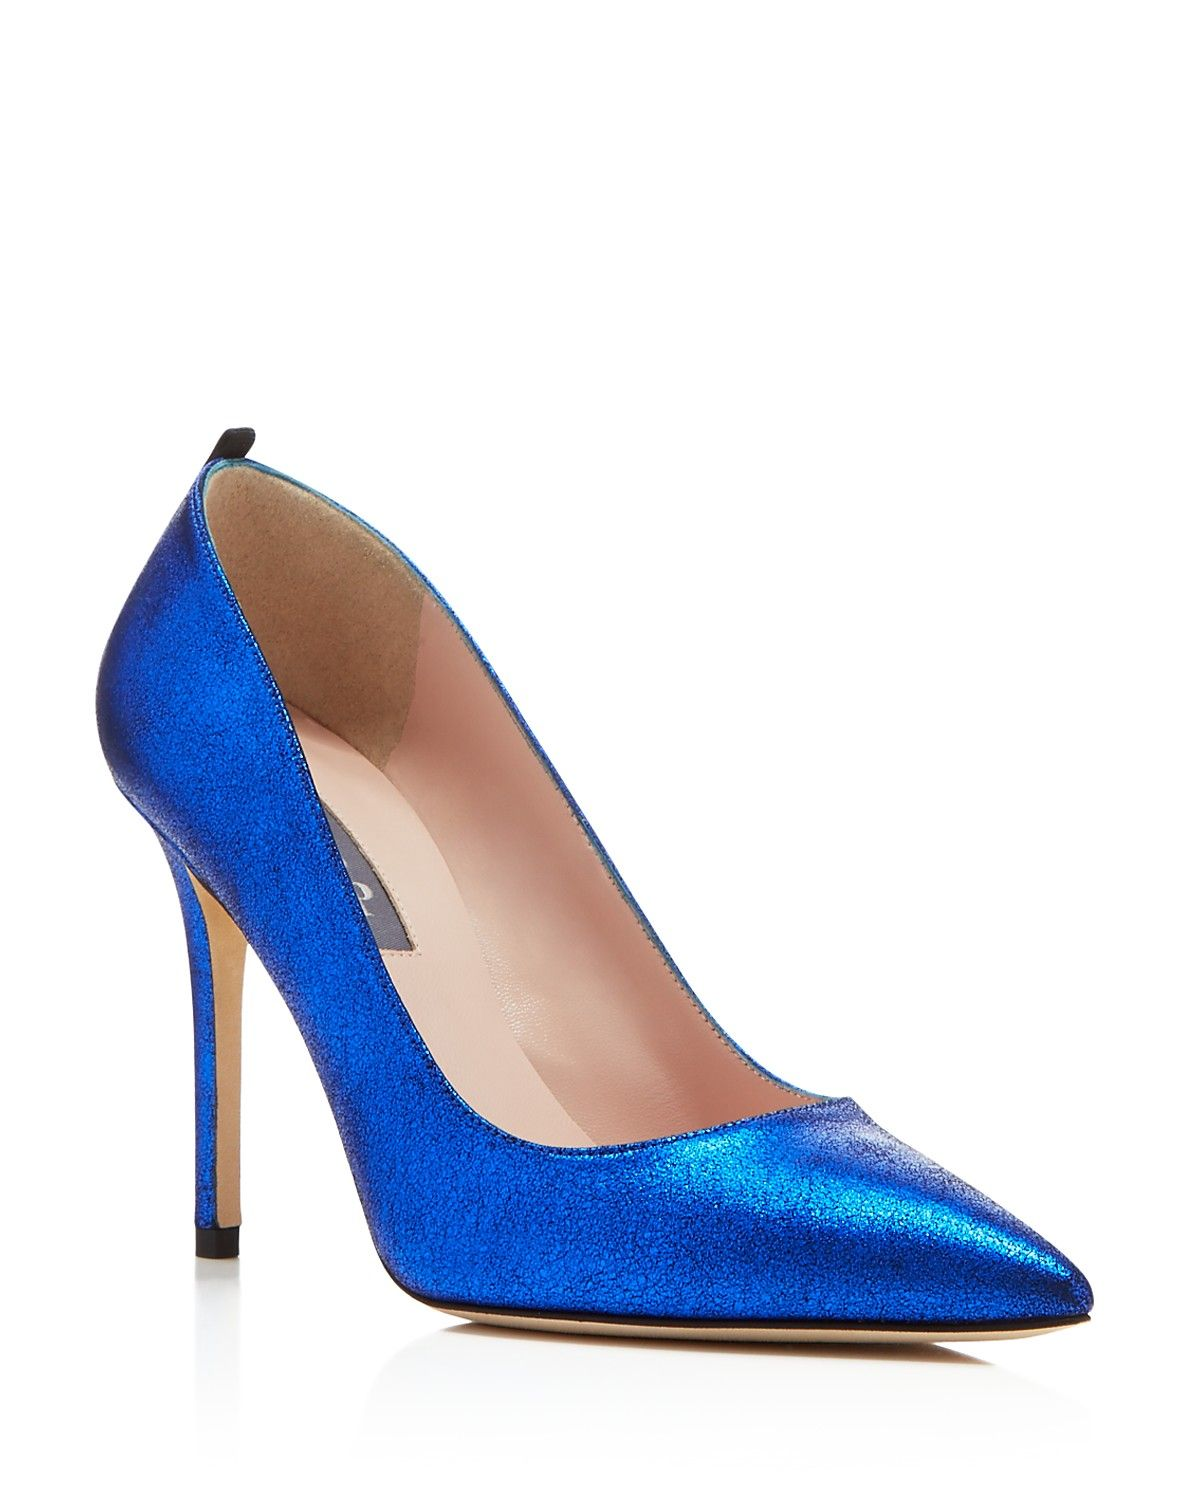 SJP by Sarah Jessica Parker Fawn Metallic Pointed Toe High Heel Pumps -  Lustrous metallic leather